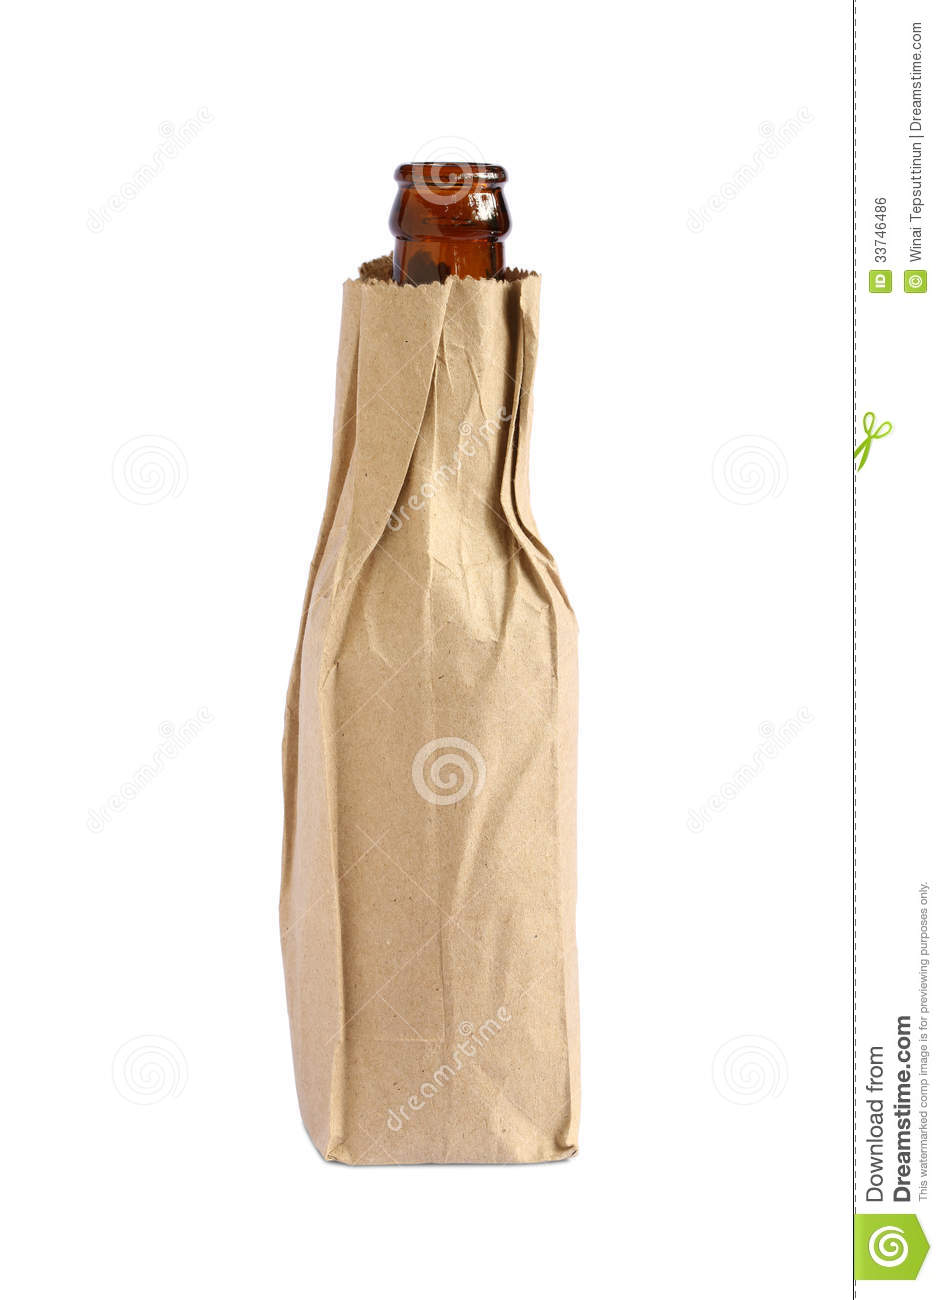 Paper bag with bottle royalty free stock image image 33746486